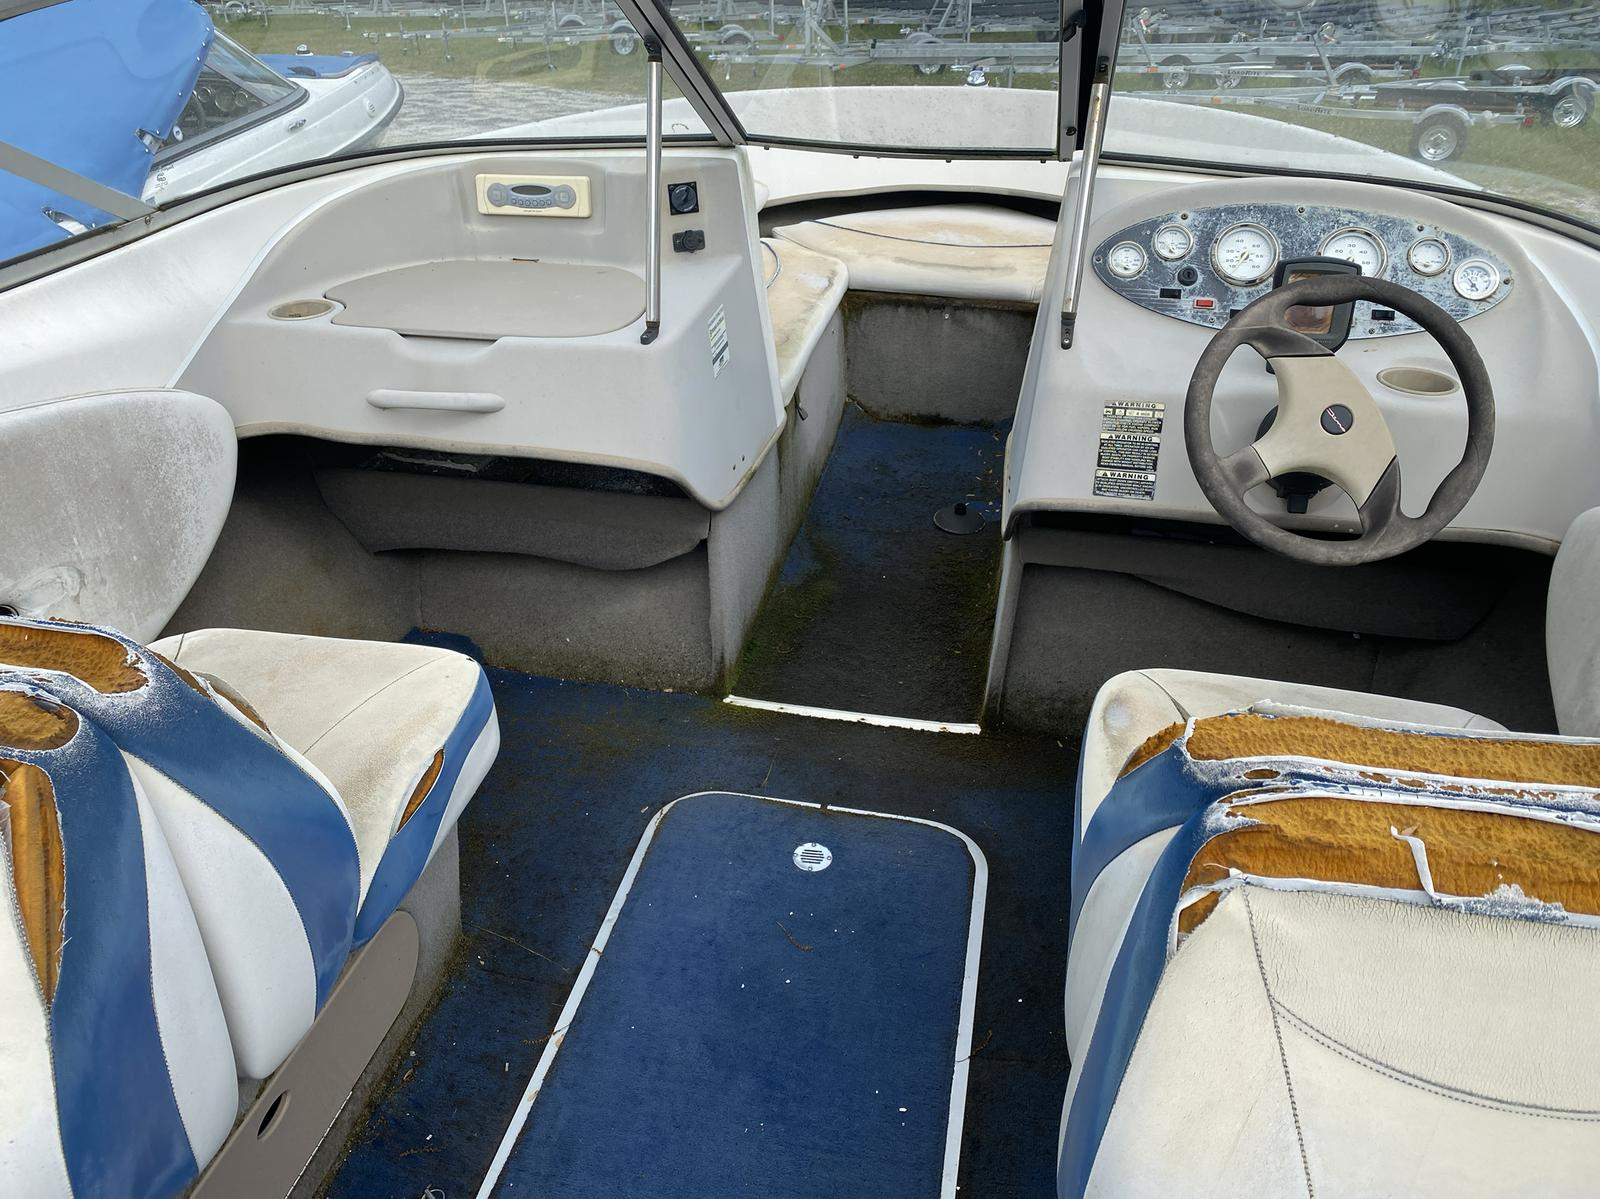 2005 Bayliner boat for sale, model of the boat is 215 Classic & Image # 2 of 5